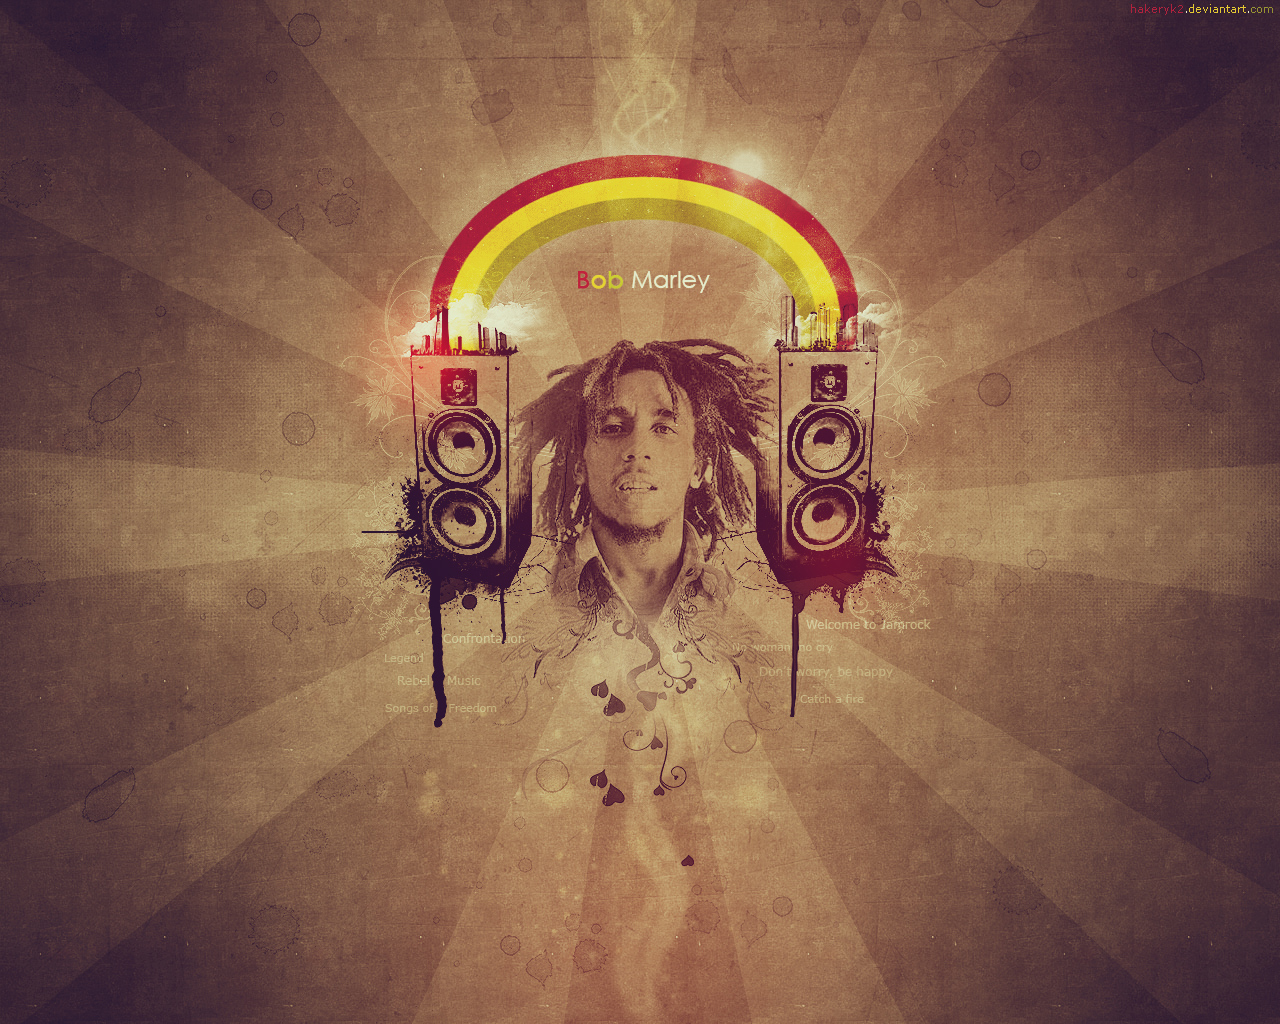 Bob Marley Wallpaper by hakeryk2